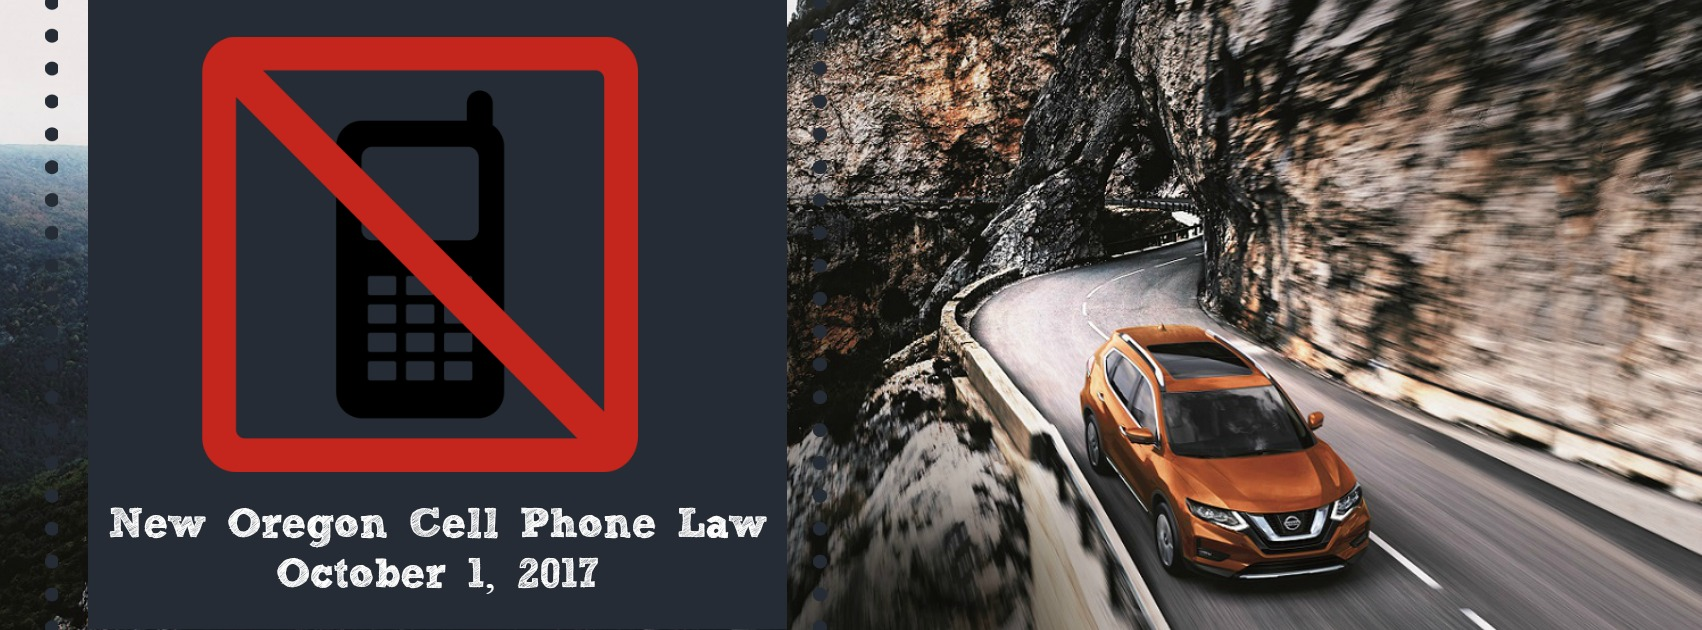 New Oregon Cell Phone Law